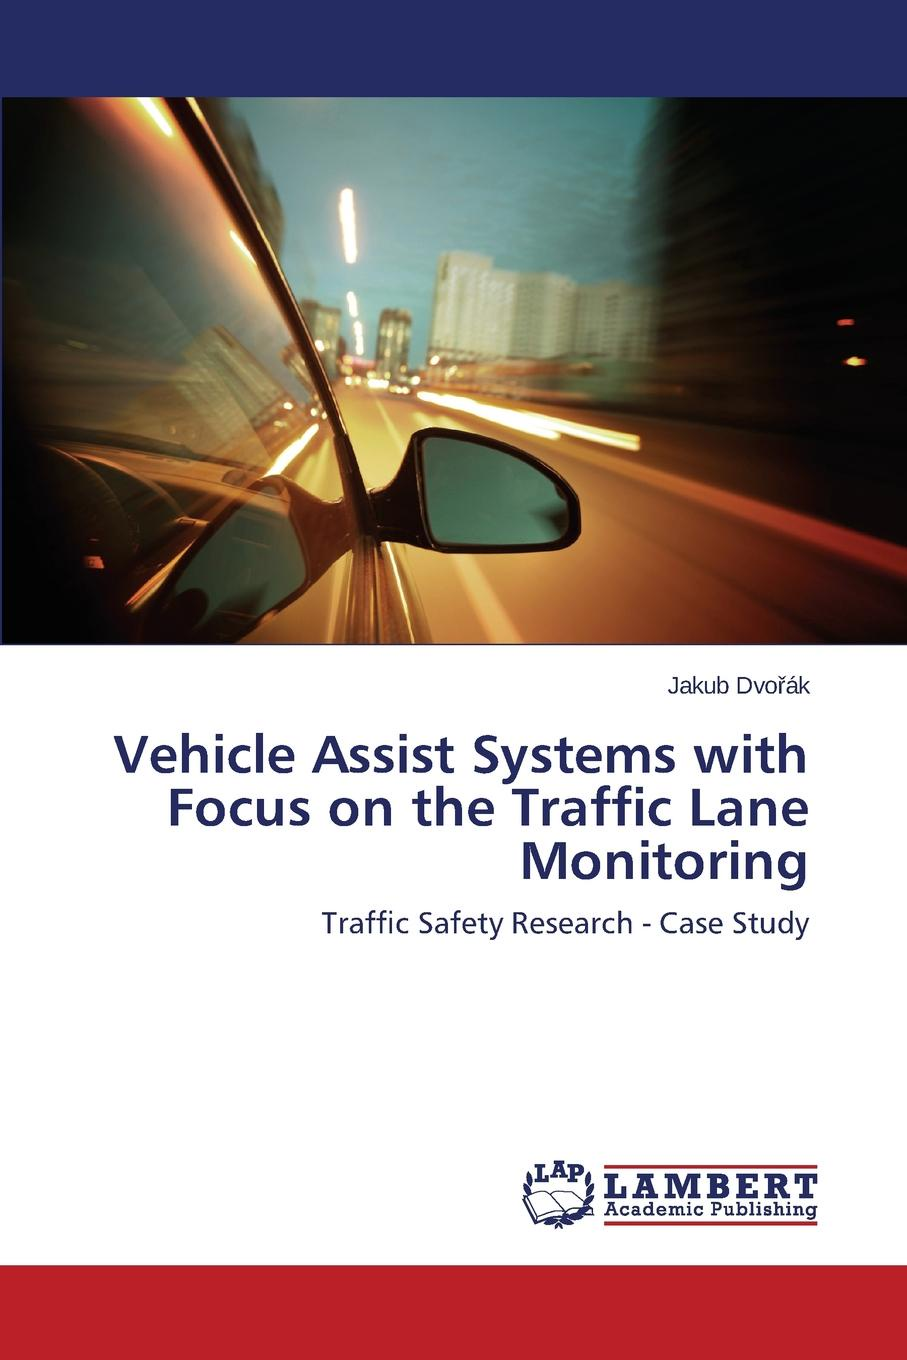 Dvořák Jakub Vehicle Assist Systems with Focus on the Traffic Lane Monitoring camera based traffic light control system